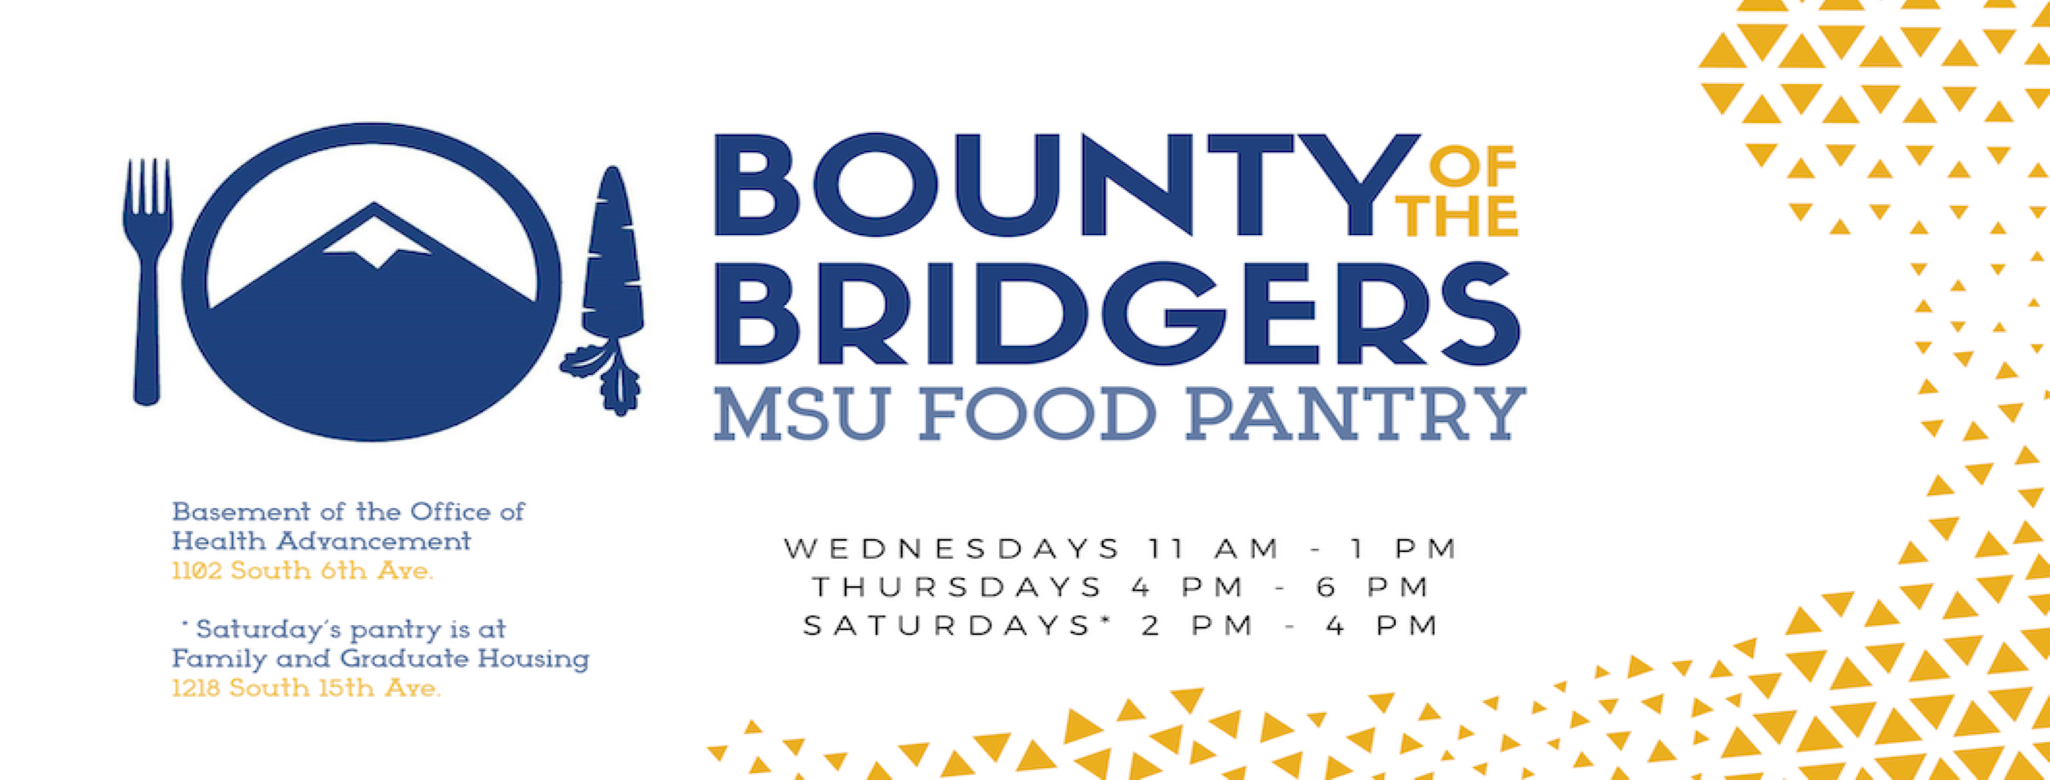 Bounty of the Bridgers MSU Food Pantry - 1102 South 6th Ave - Saturday's at 1218 S 15th Ave